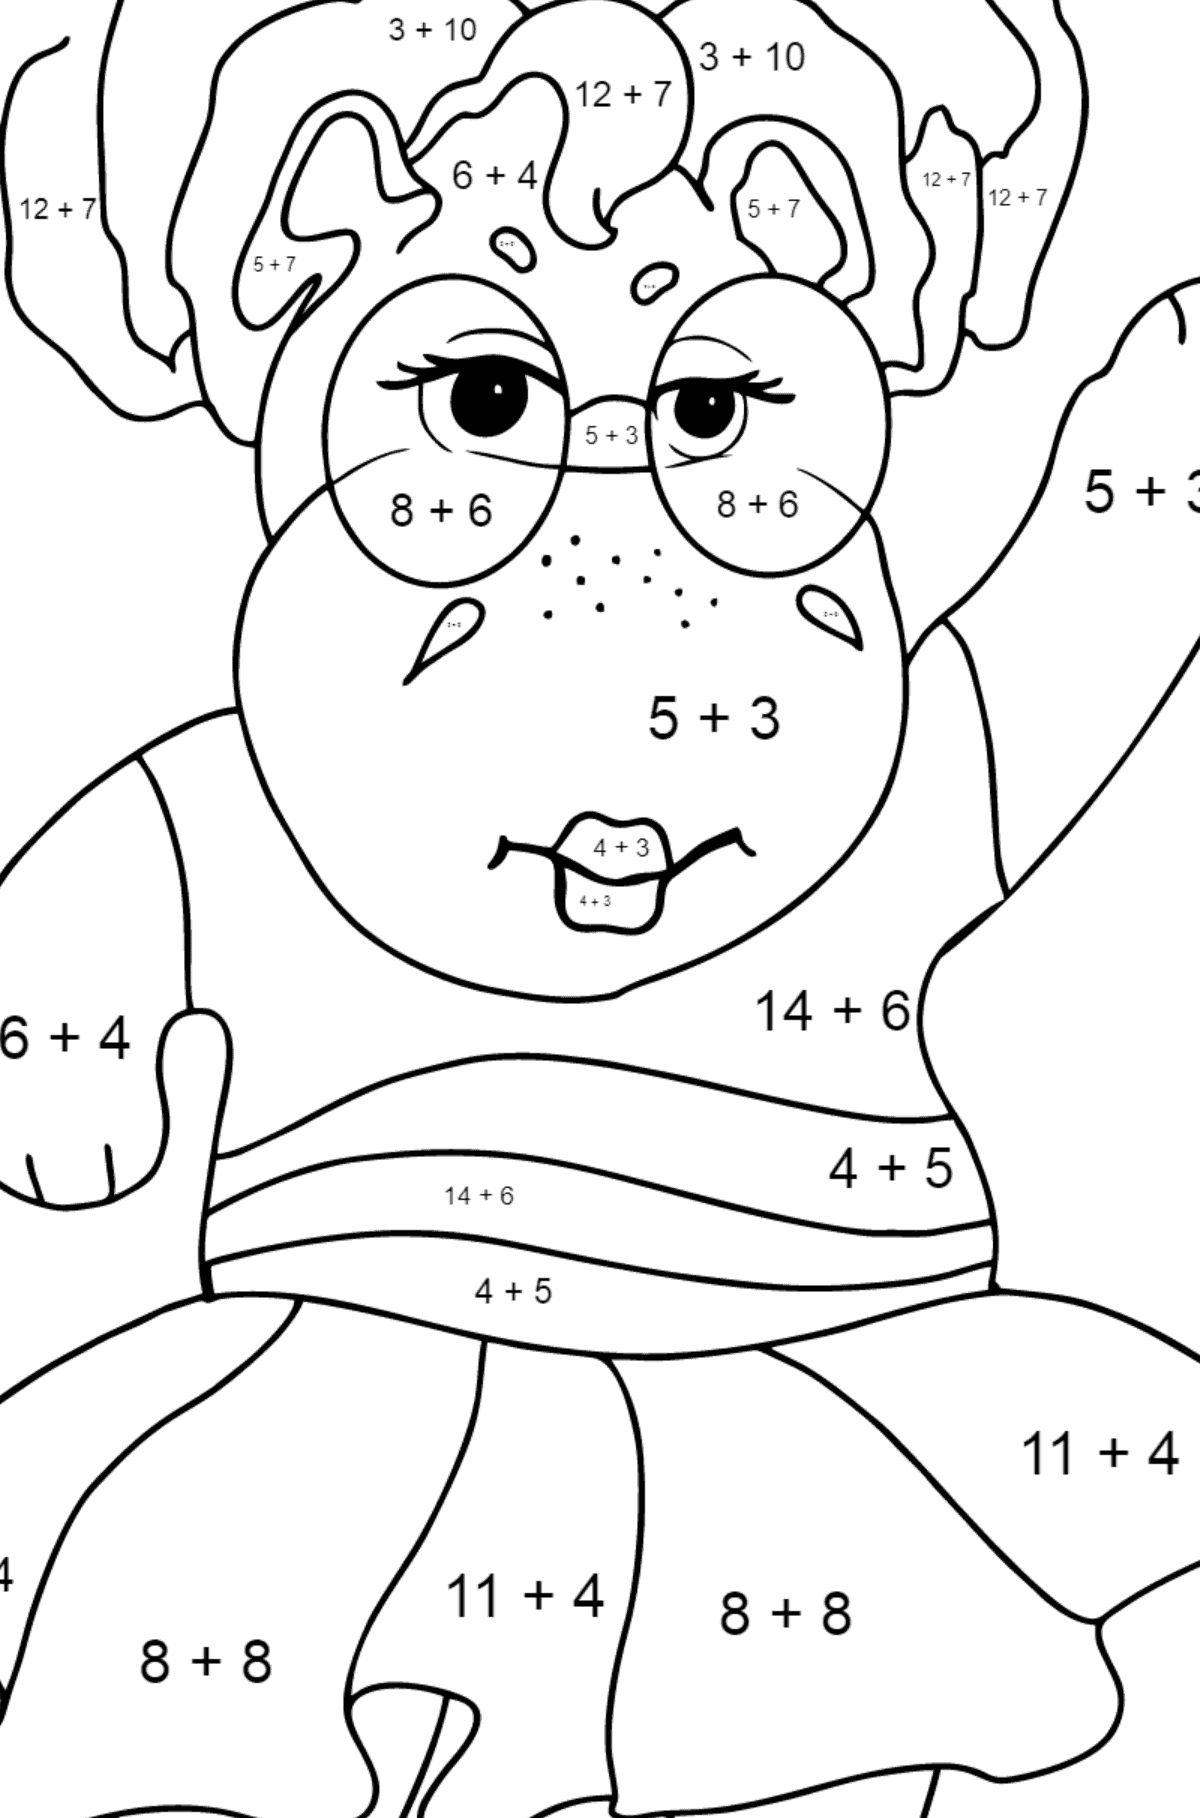 Coloring Page - A Hippo in Sunglasses for Kids  - Color by Number Addition